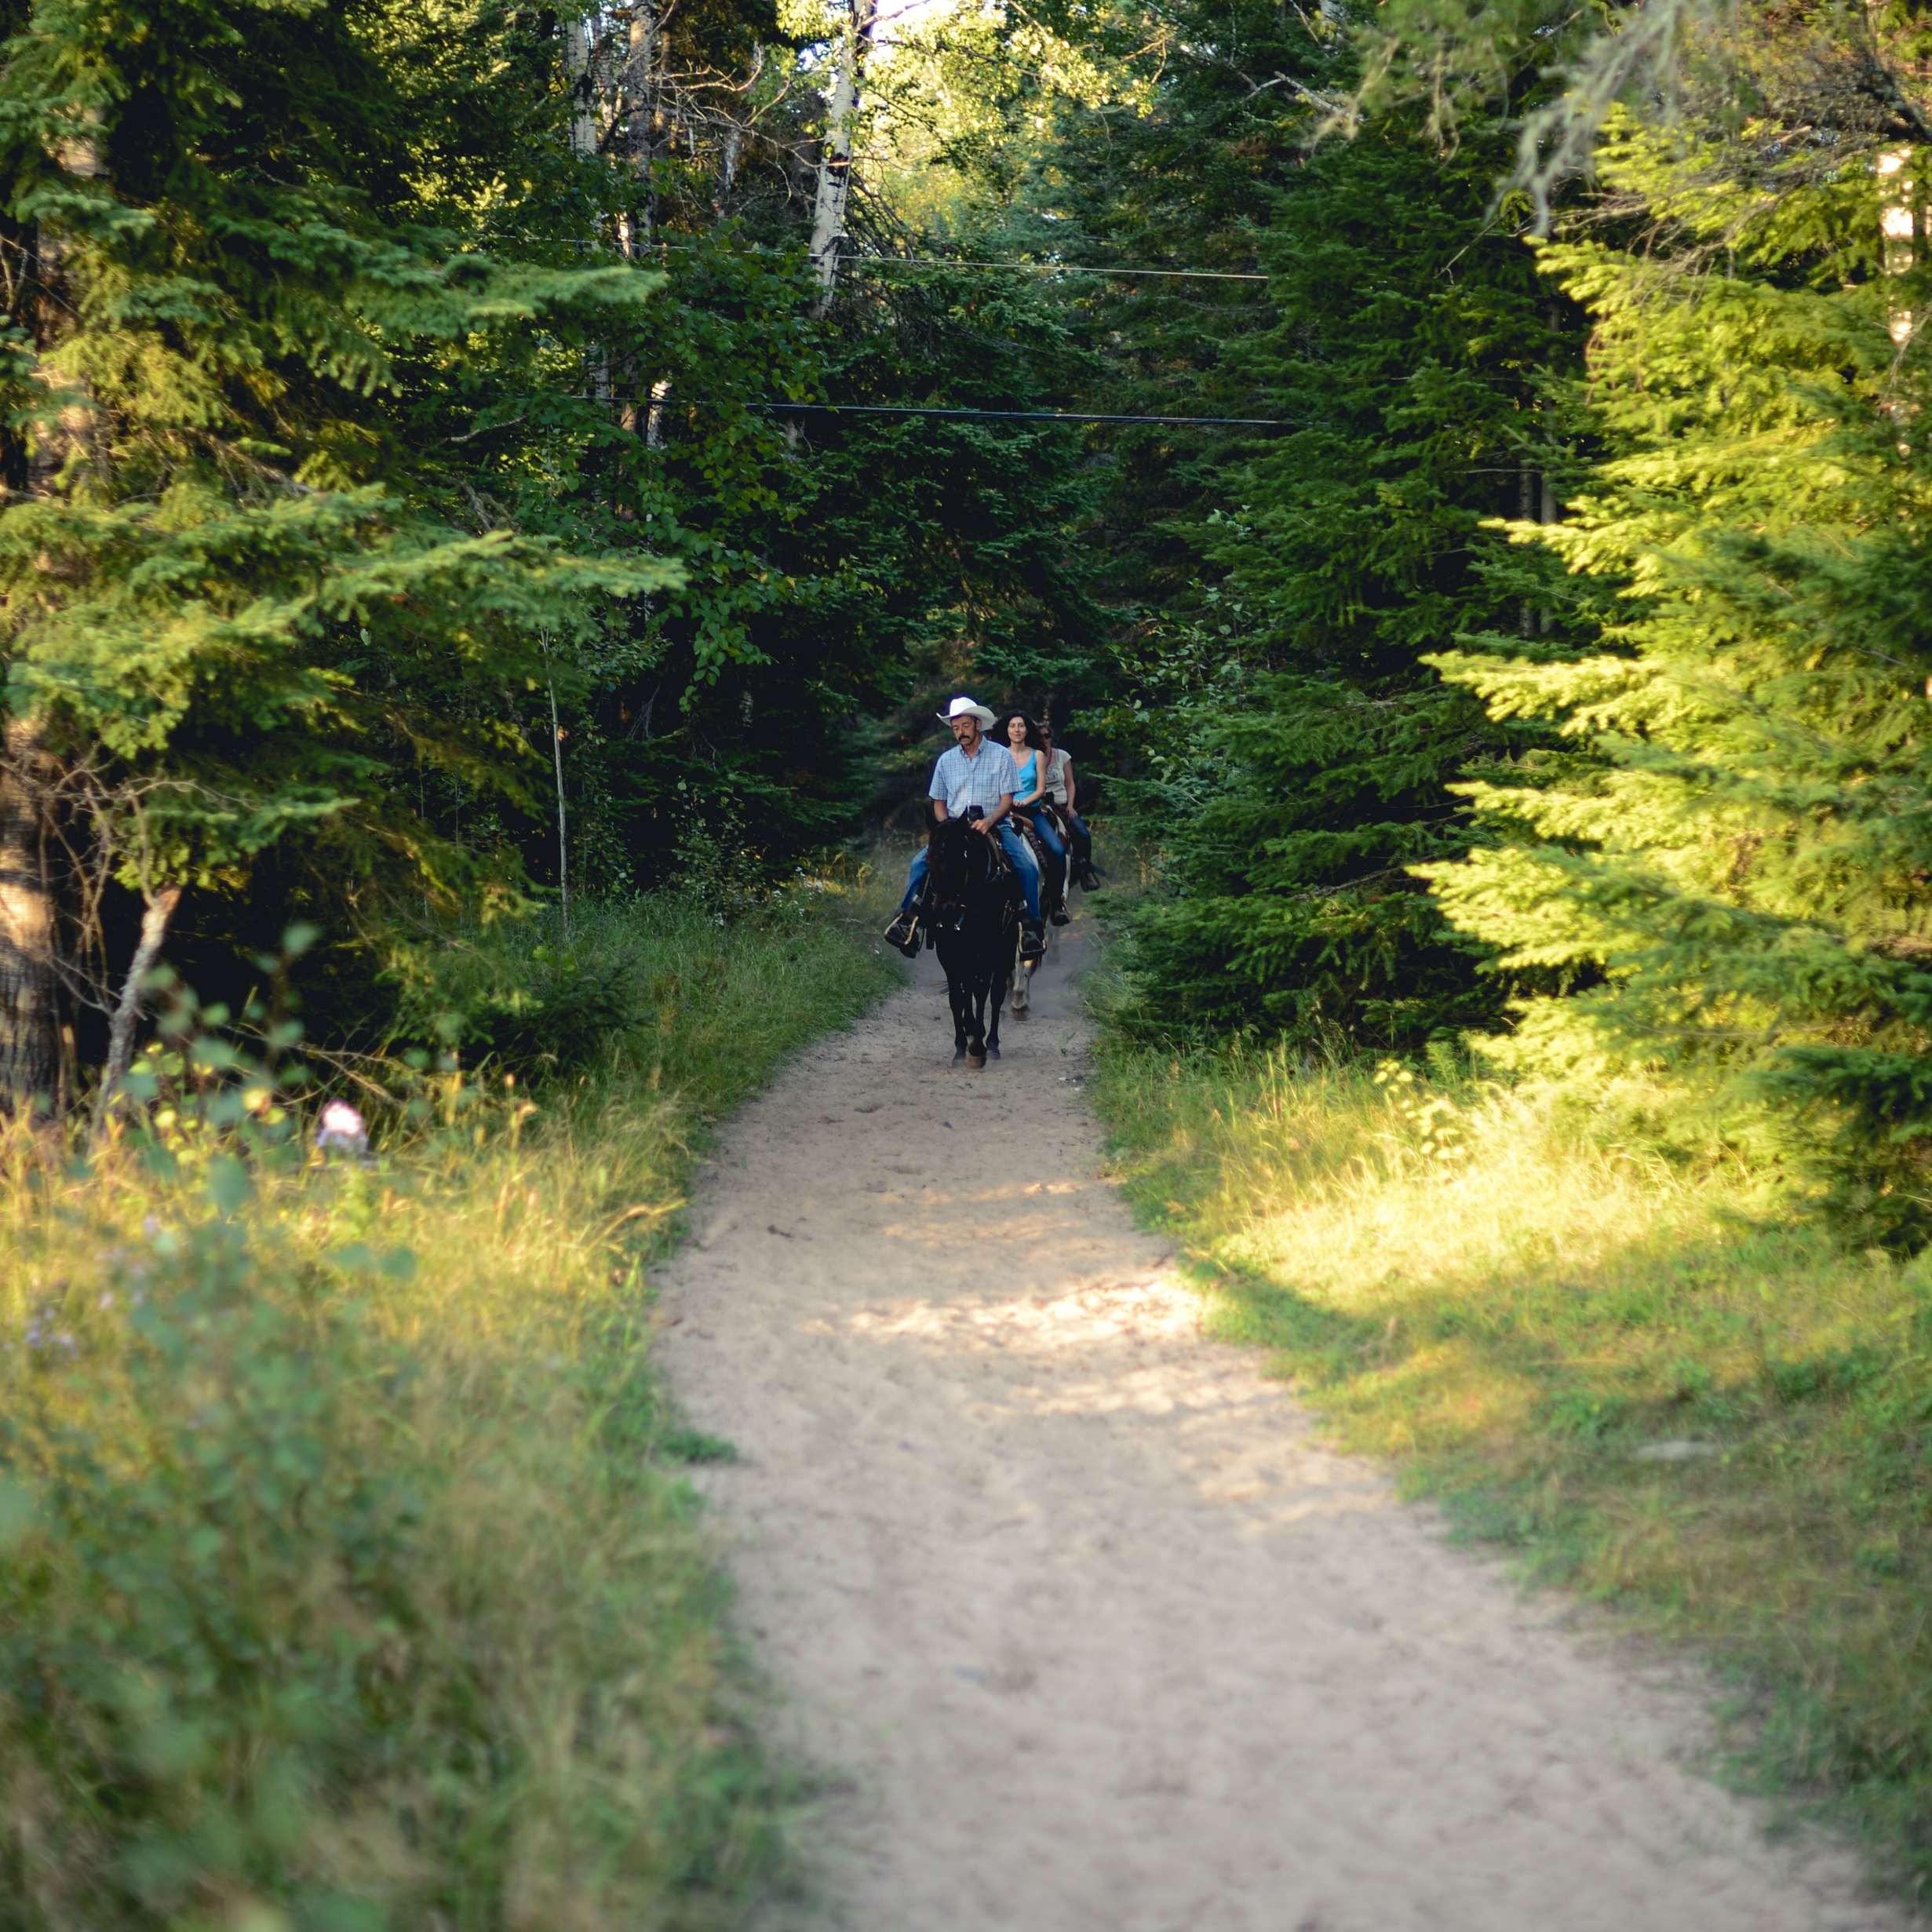 One-Hour Ride   This is our most popular ride, perfect for riders of all ages and abilities. Experienced guides match you with one of our well-trained horses and review basic horsemanship with each rider before leaving the Ranch. Once on the trail, relax and enjoy your horse and the beautiful boreal forest of the Whiteshell Provincial Park. All rides are grouped according to riding ability.  See rates  HERE .